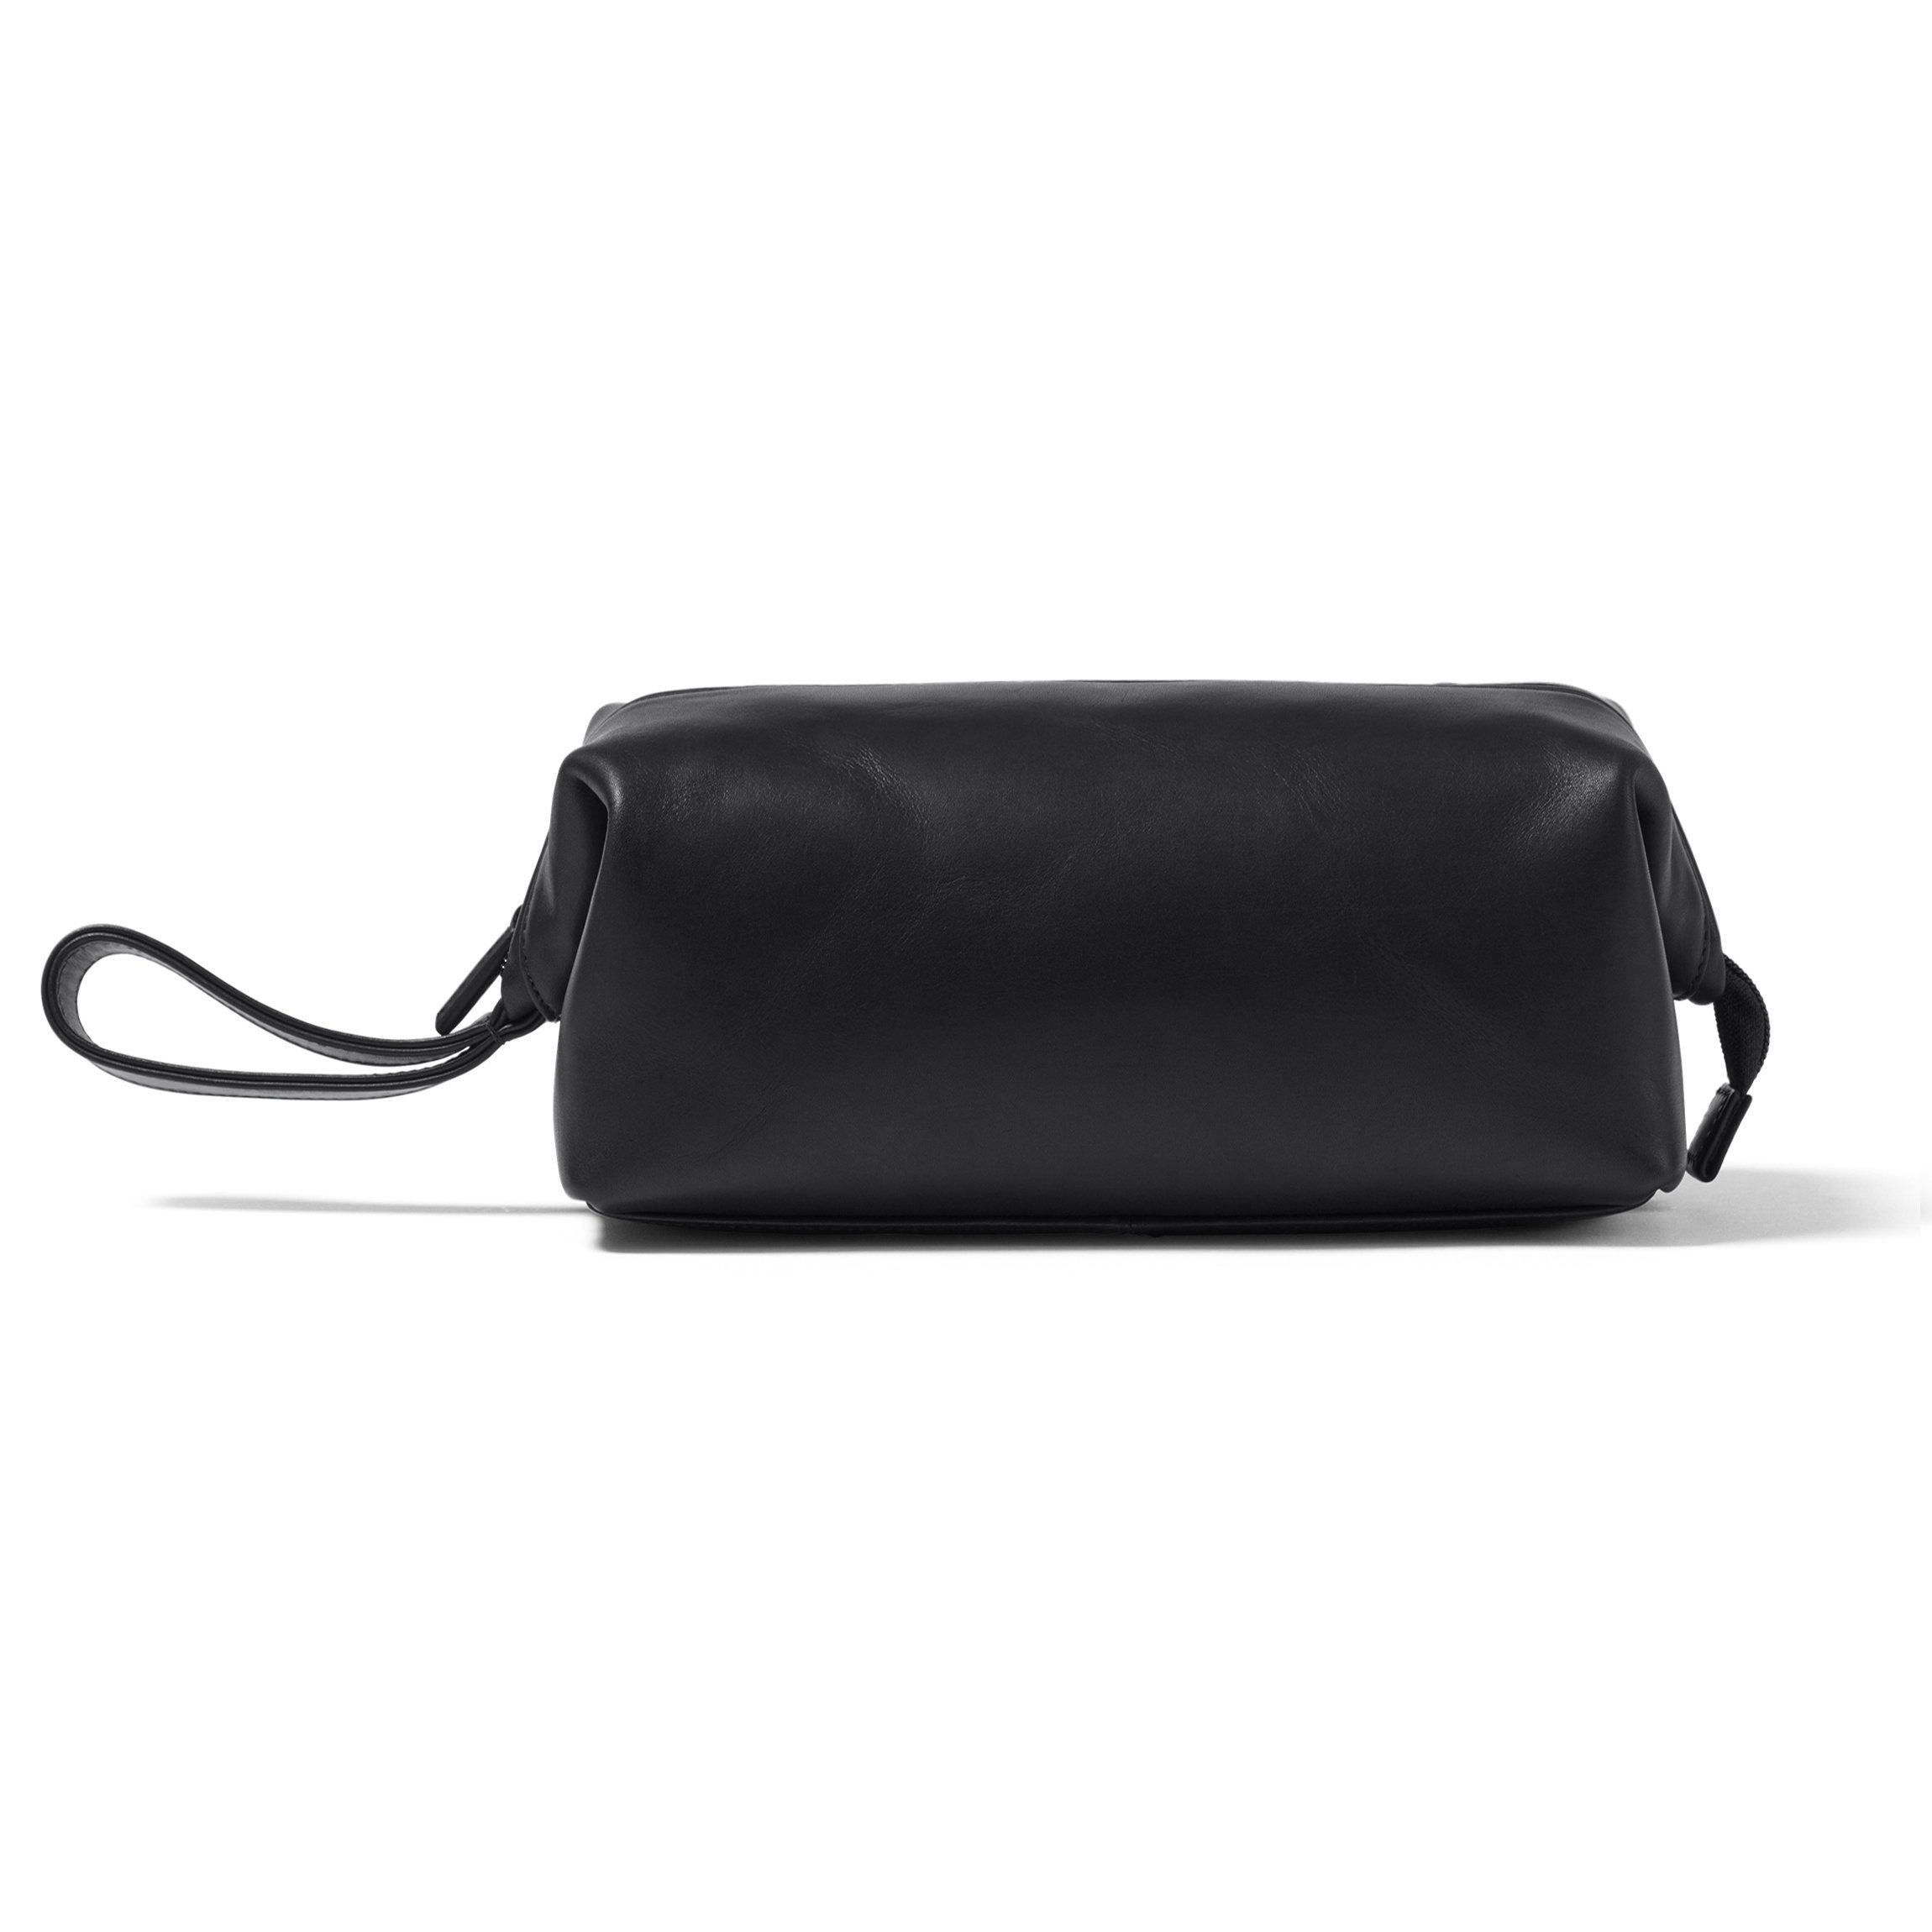 Leatherology Framed Toiletry Bag - Full Grain German Leather Leather - Black Oil (black)